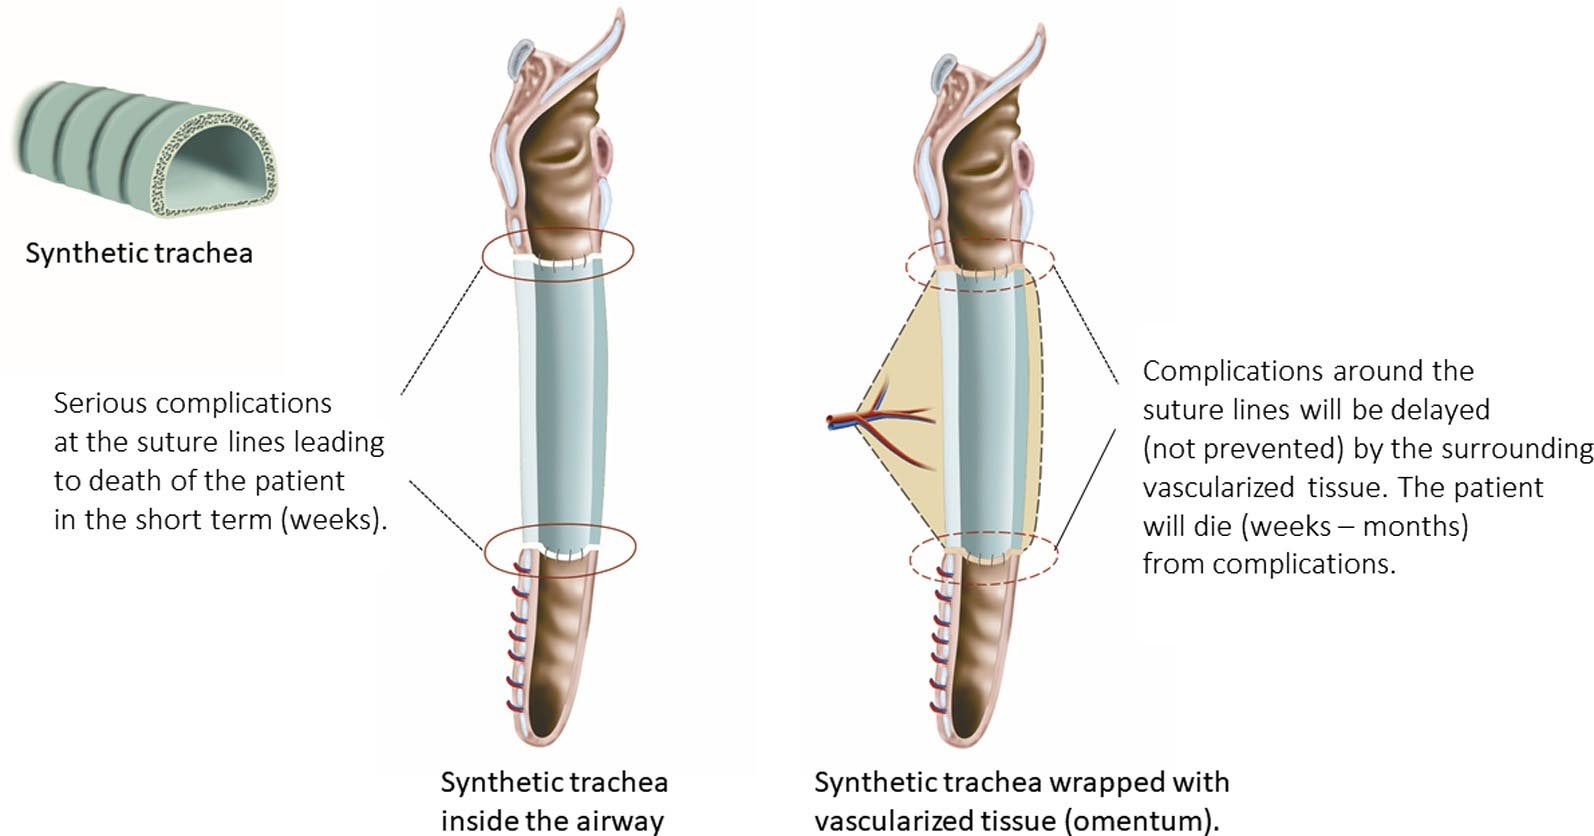 Commentary: The sobering truth about tracheal regeneration